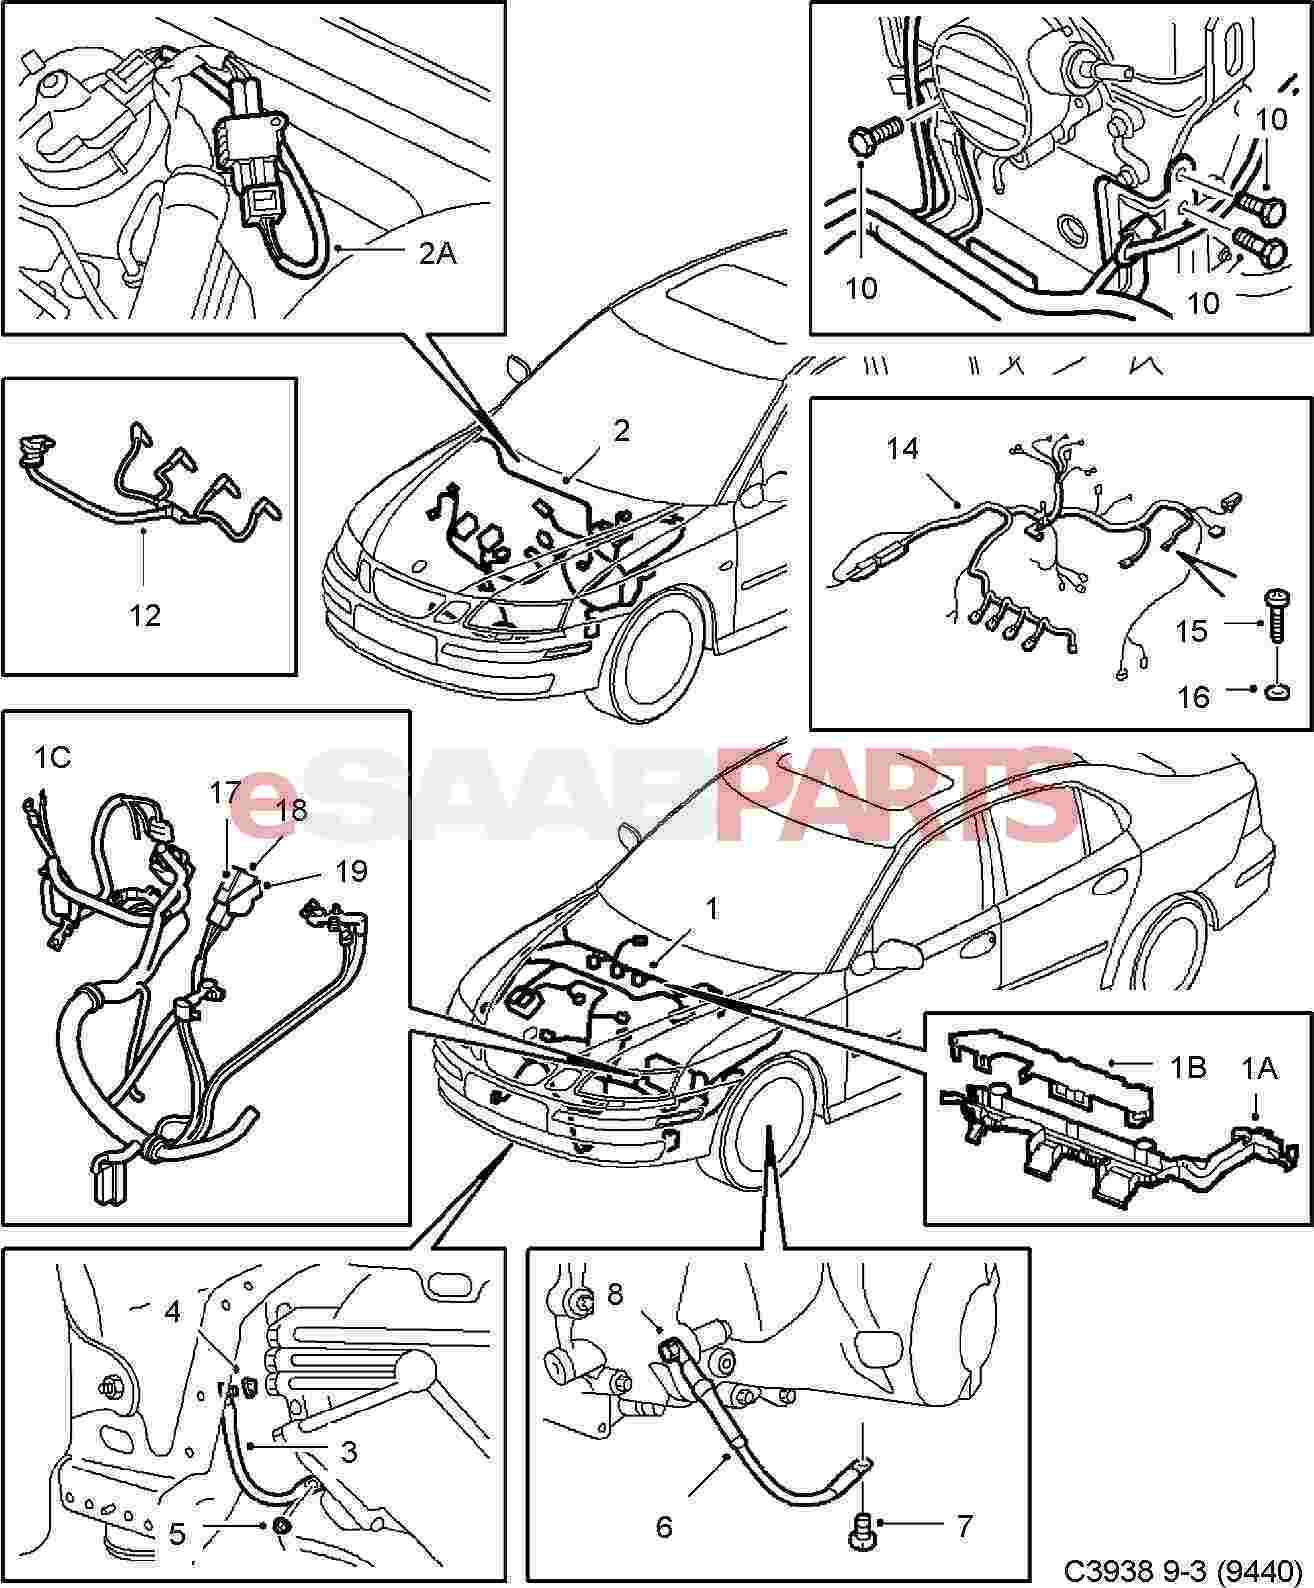 39595 esaabparts com saab 9 3 (9440) \u003e electrical parts \u003e wiring saab 9-5 wiring harness at readyjetset.co